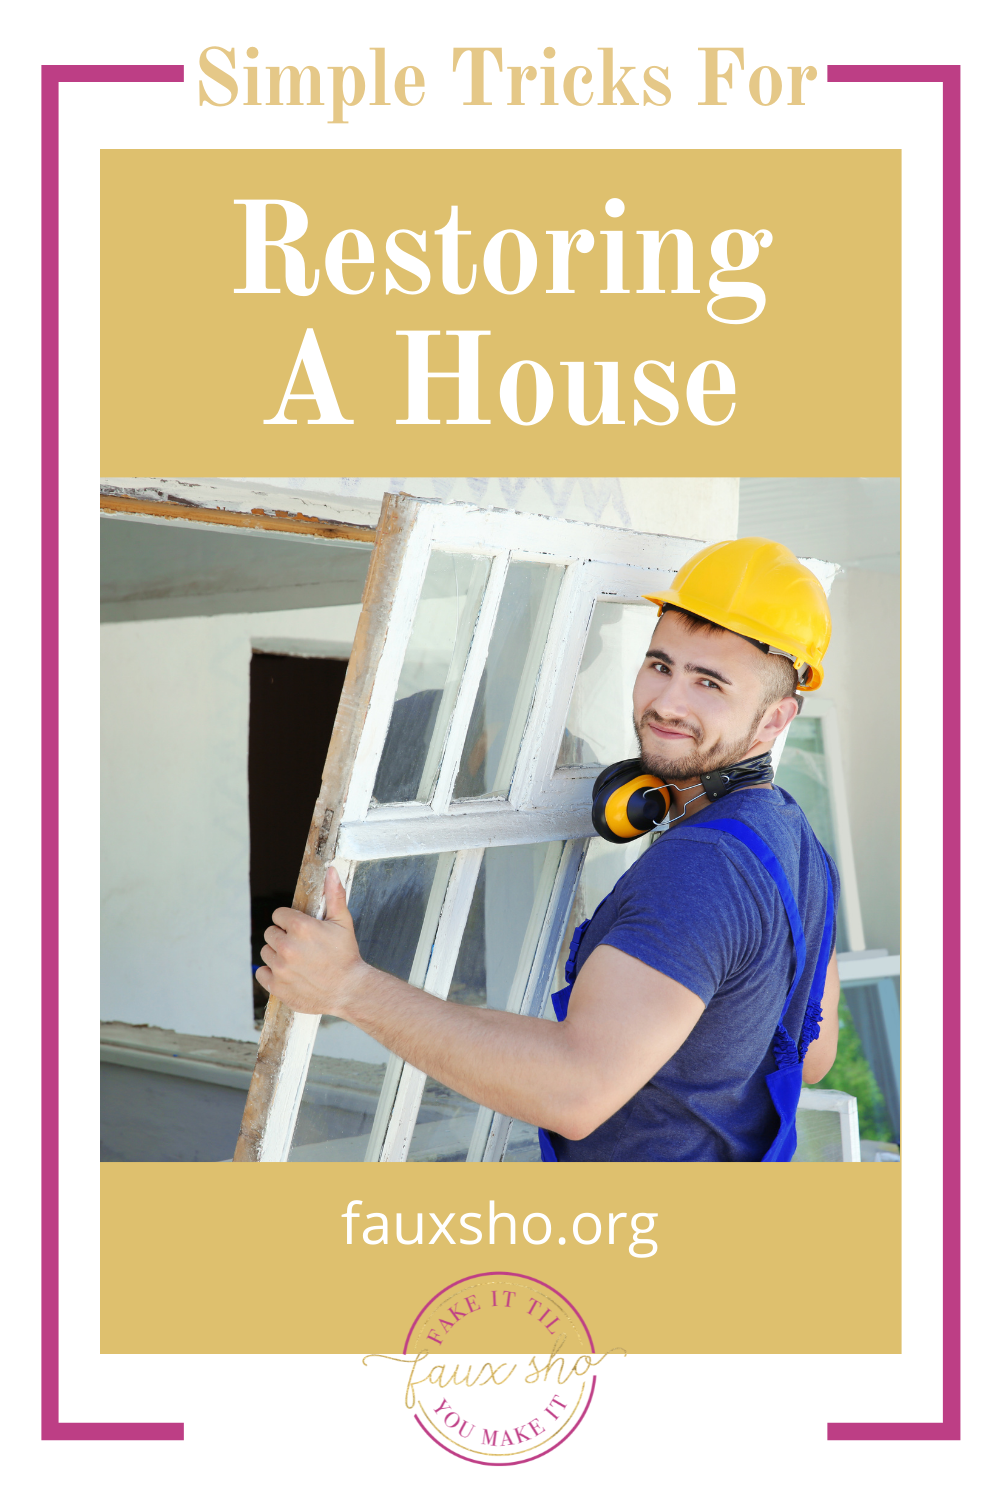 Fauxsho.org will help you find out how to do things on your own--even without any experience! Looking to fix up an outdated space? Find out how you can restore a home on your own now!